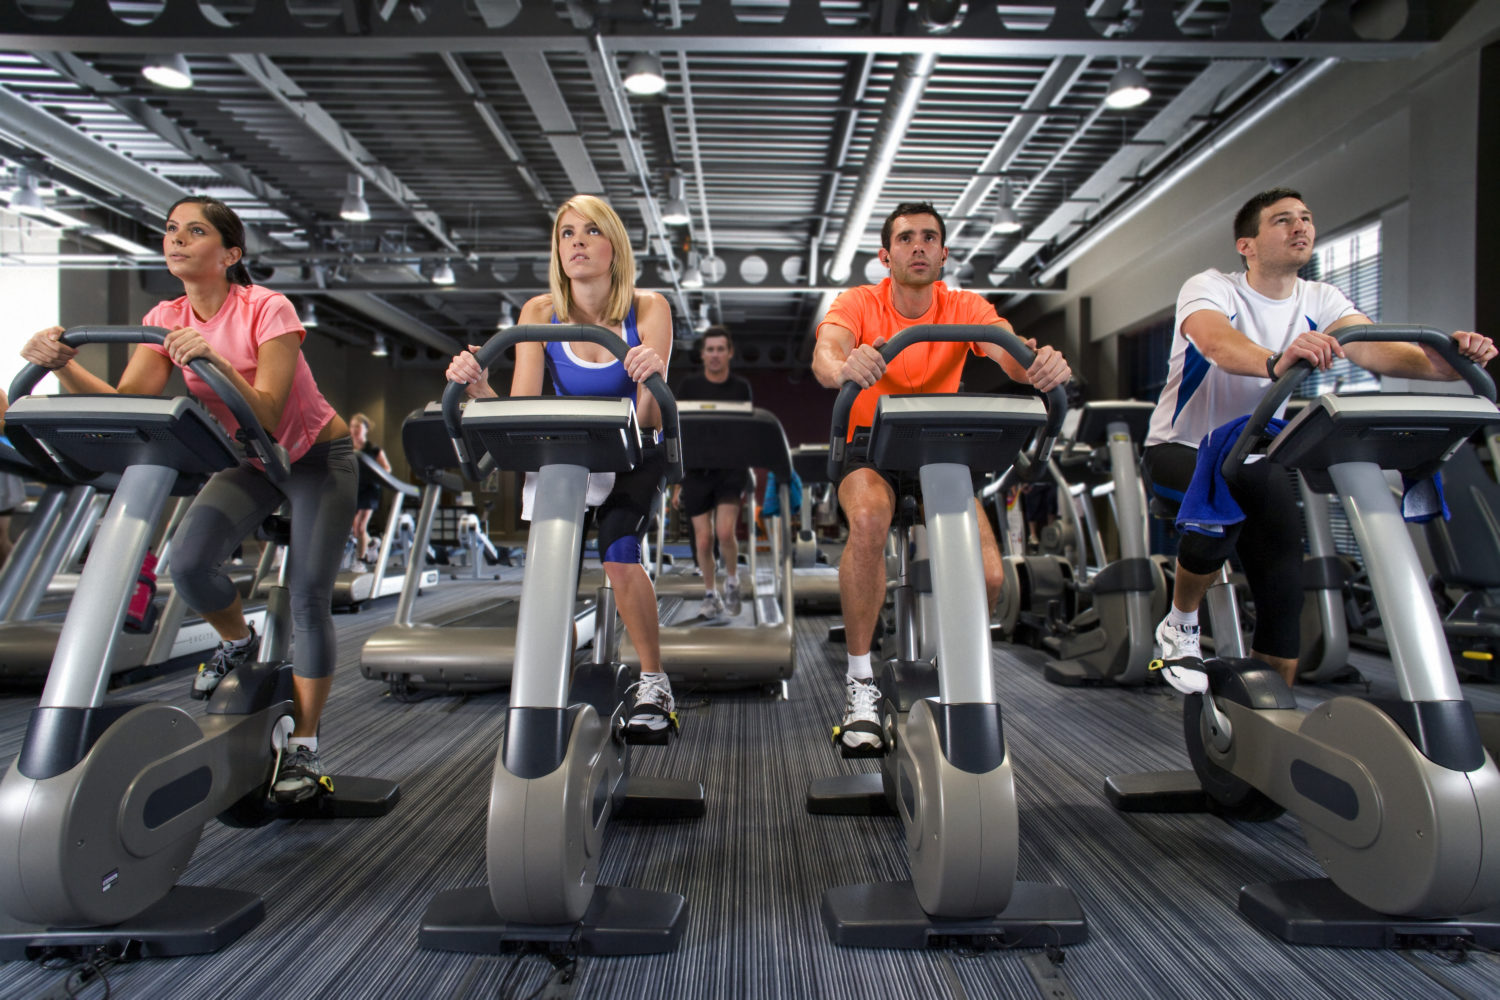 Sweat, bleach and gym air quality: Chemical reactions make new airborne chemicals